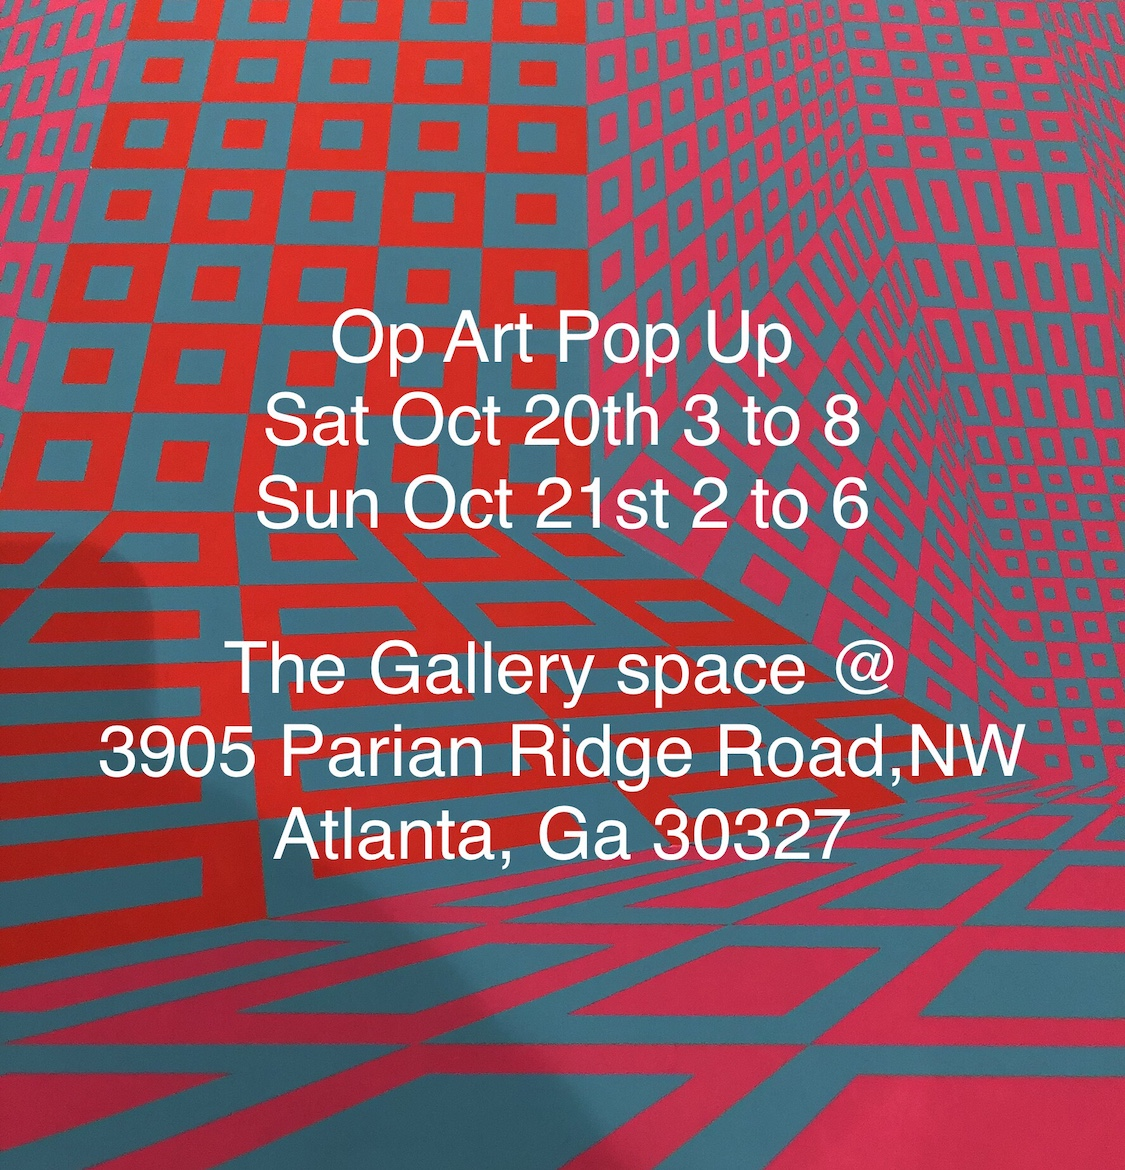 Click on image for more info on our upcoming Op Art Pop Up.